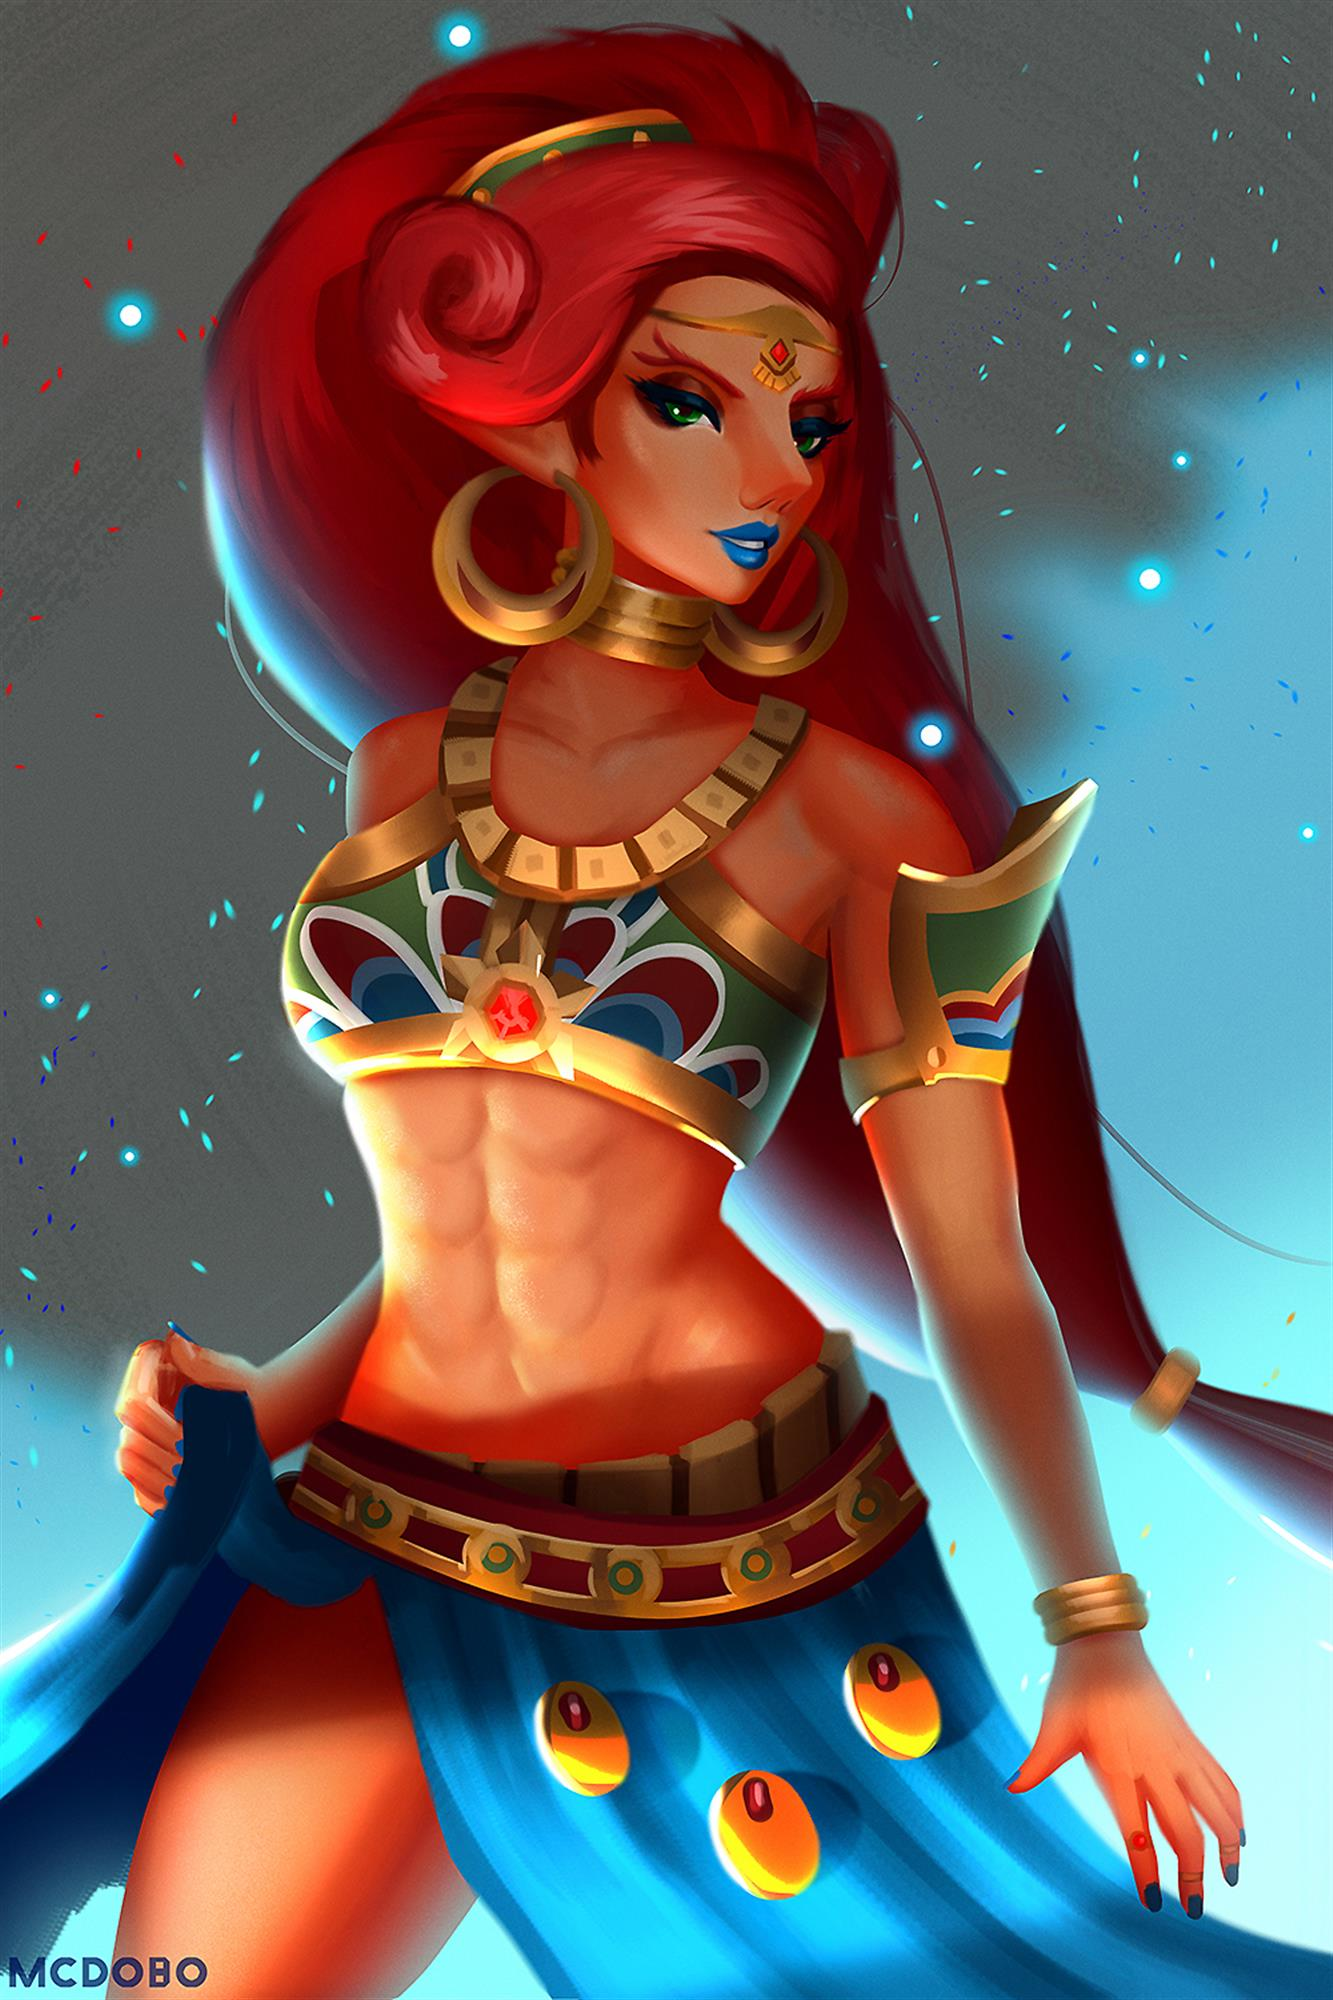 Urbosa lewd lifting her skirt